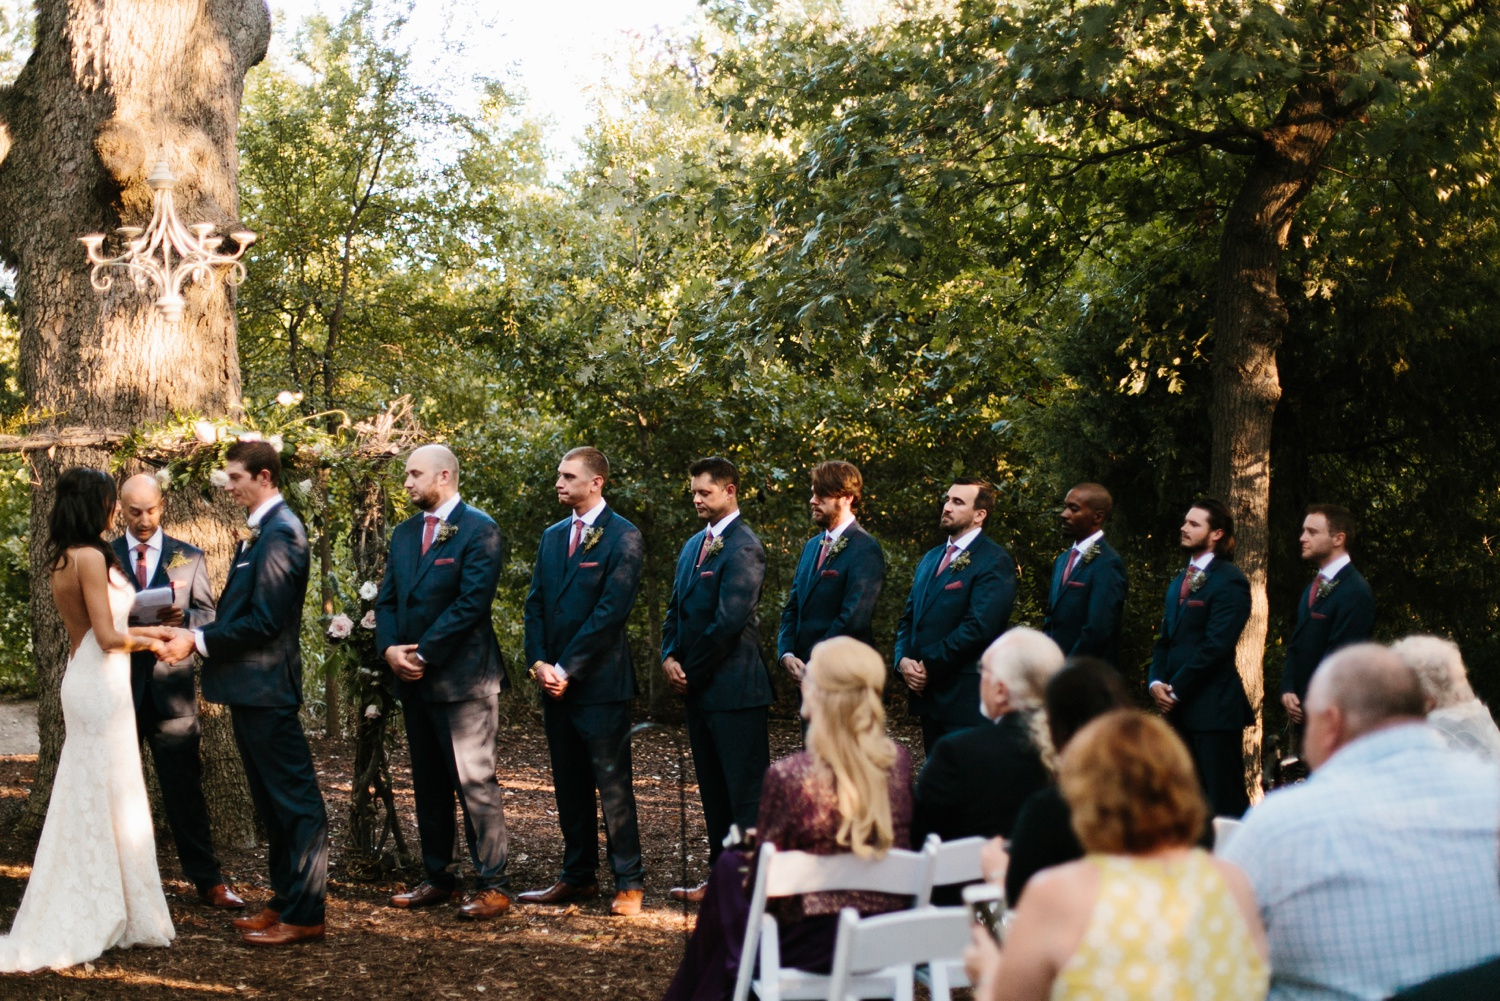 Erica + Henry | a bohemian inspired wedding at Chandlers Gardens in Salina, TX by North Texas Wedding Photographer Rachel Meagan Photography 074